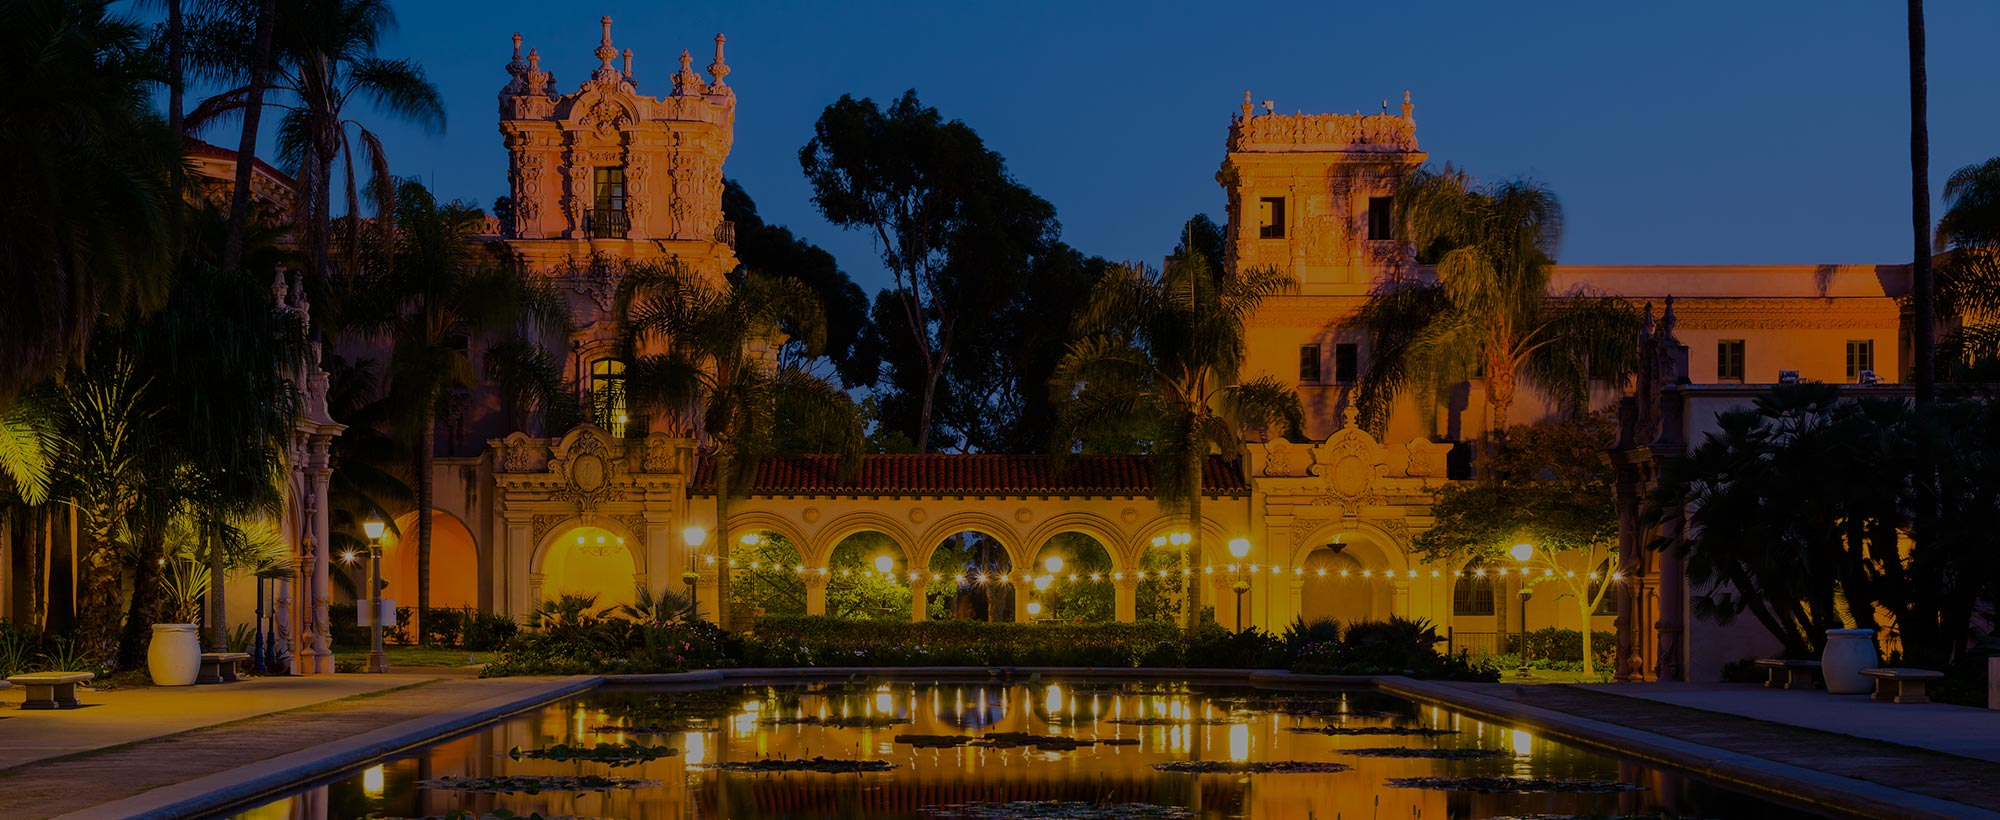 Balboa Park in San Diego, CA at Night